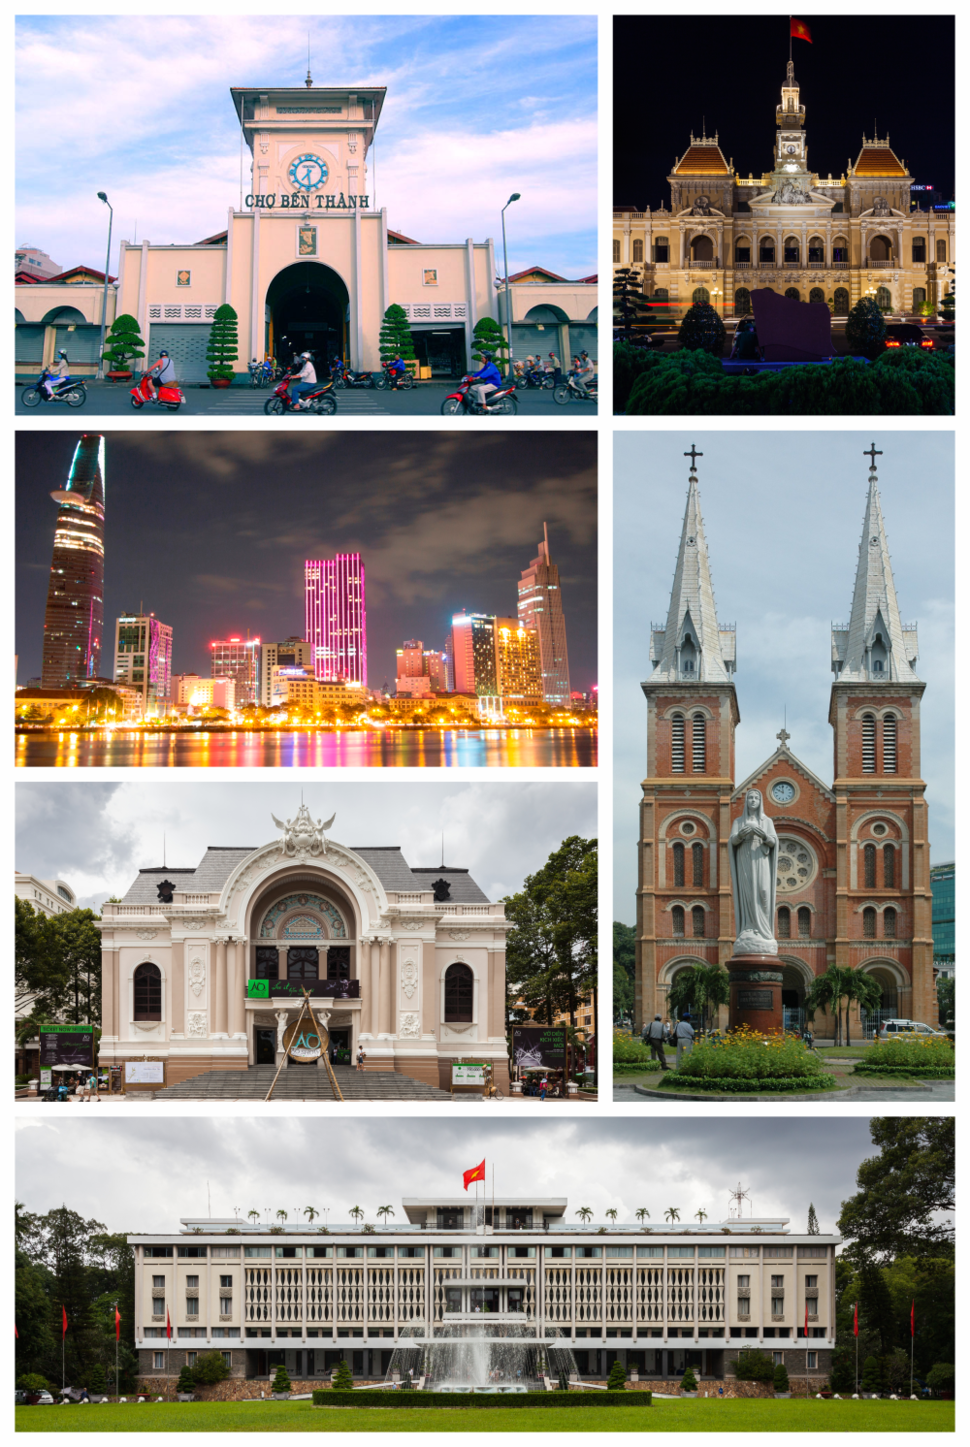 Clockwise, from top left: Bến Thành Market, Ho Chi Minh City Hall, Notre-Dame Cathedral Basilica of Saigon, Independence Palace, Municipal Theatre, View of central Ho Chi Minh City from District 2